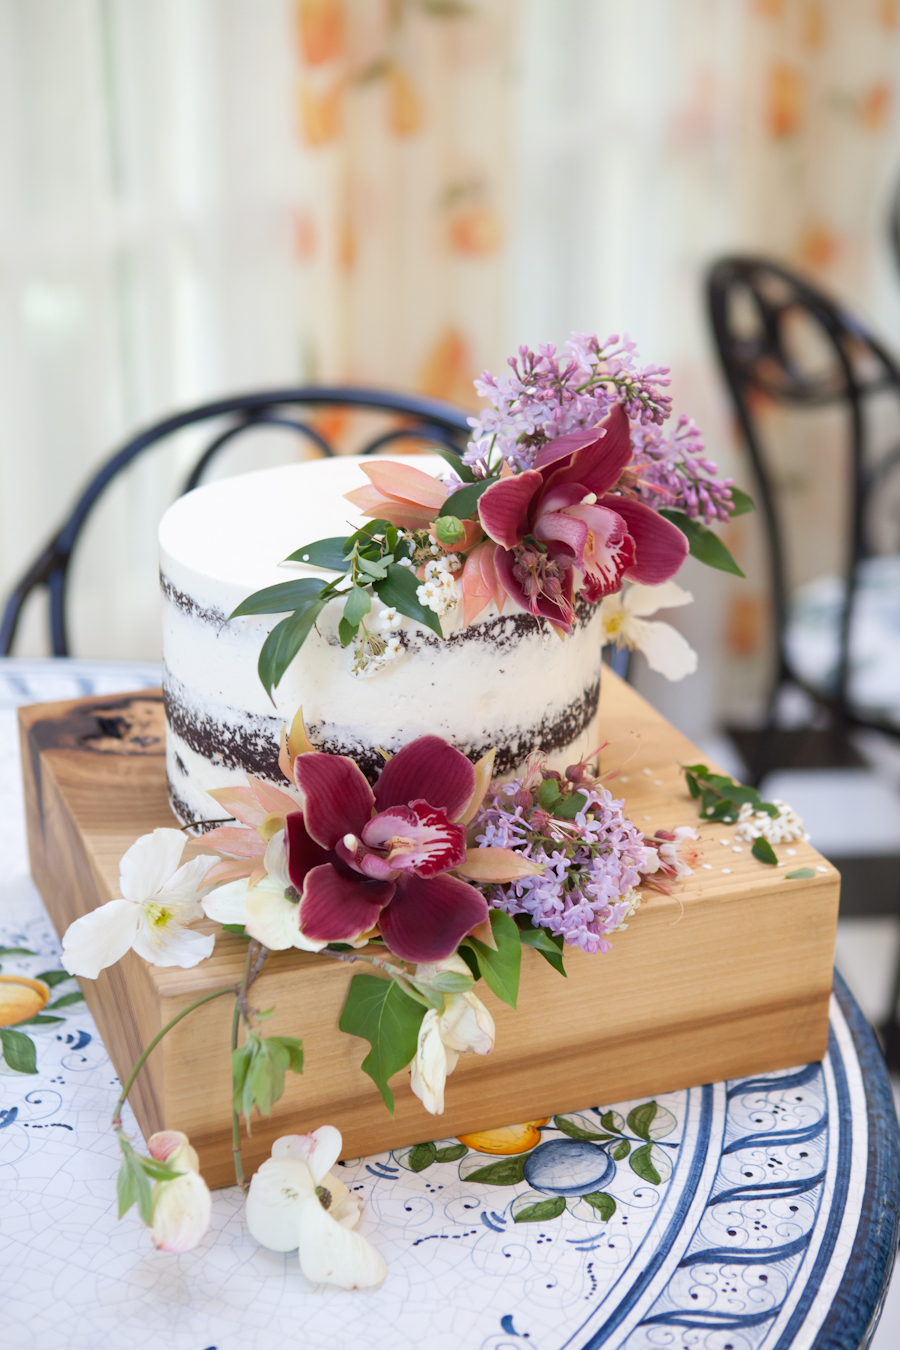 Naked wedding cake by Ruth and Dean, Victoria BC